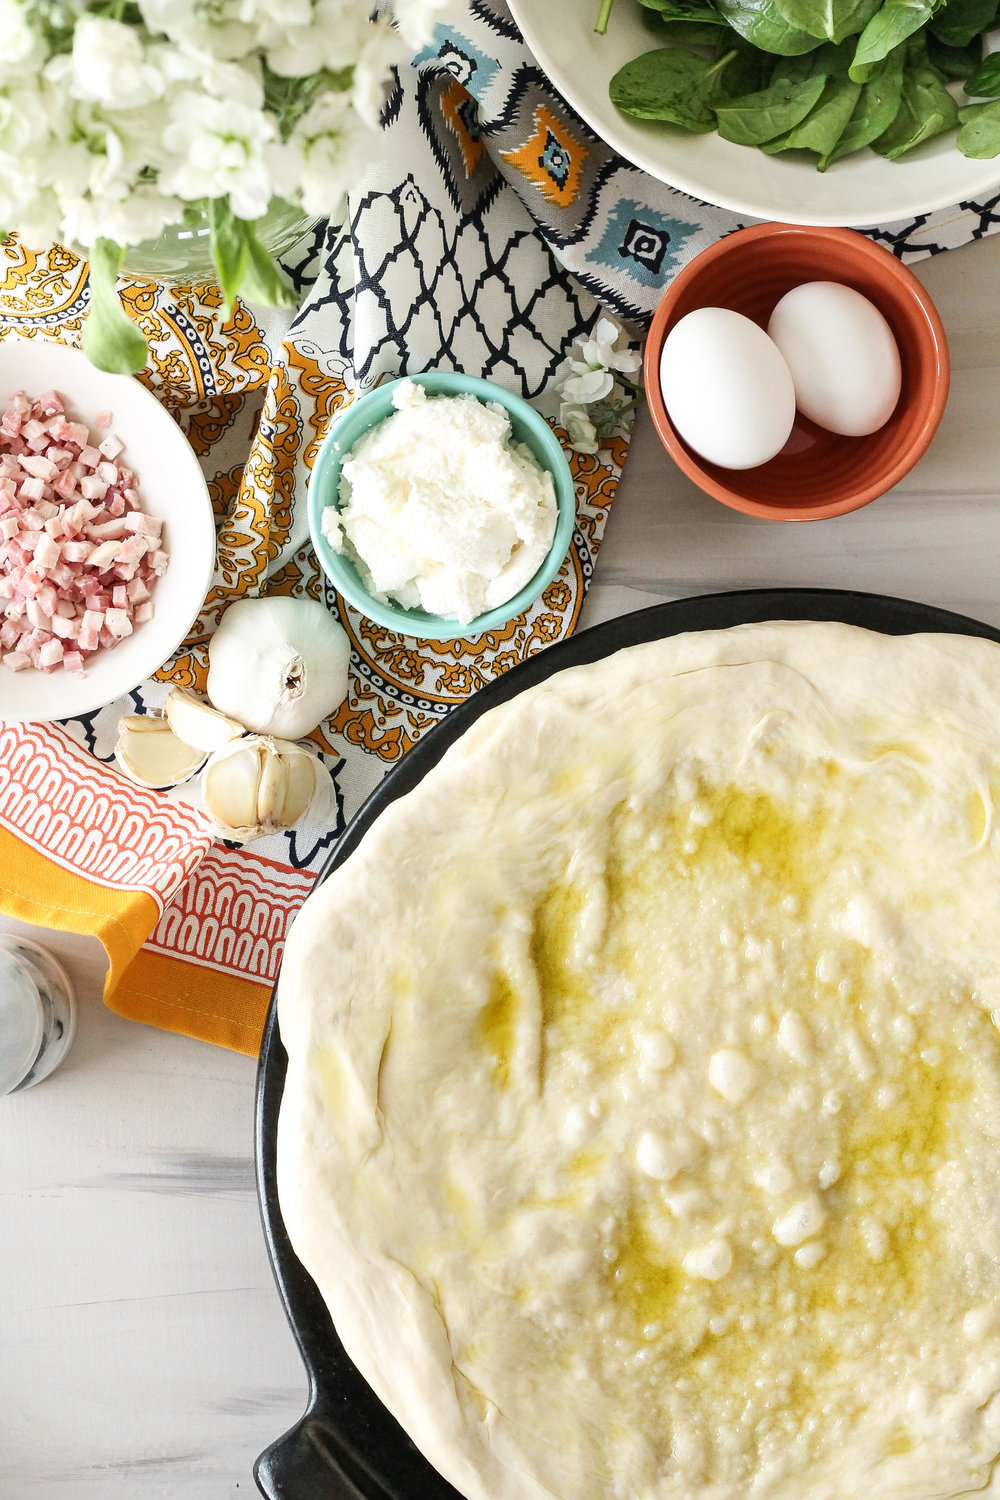 Set aside the quiches and kick-off your weekend with this easy and delicious breakfast pizza!!  Lemon-infused olive oil, pancetta, and rich ricotta form a savory, flavorful trio of toppings!  [ www.pedanticfoodie.com]